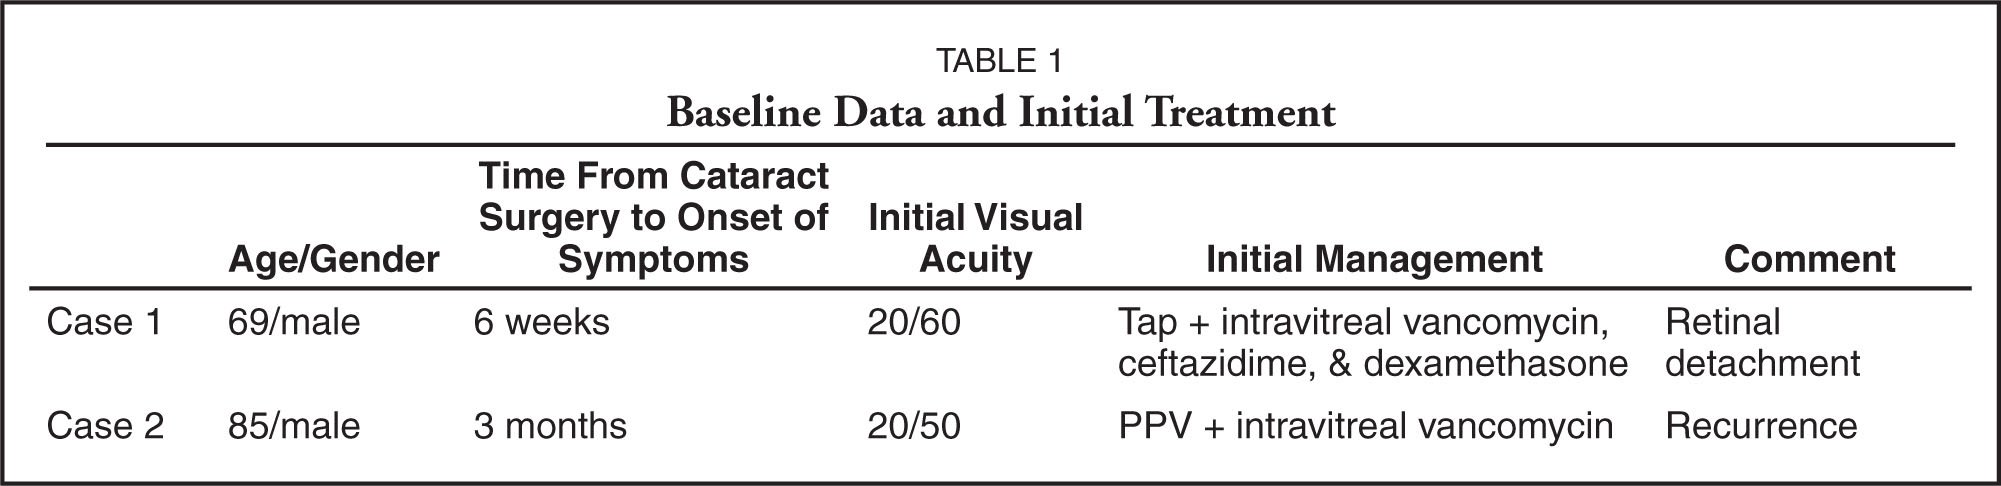 Baseline Data and Initial Treatment